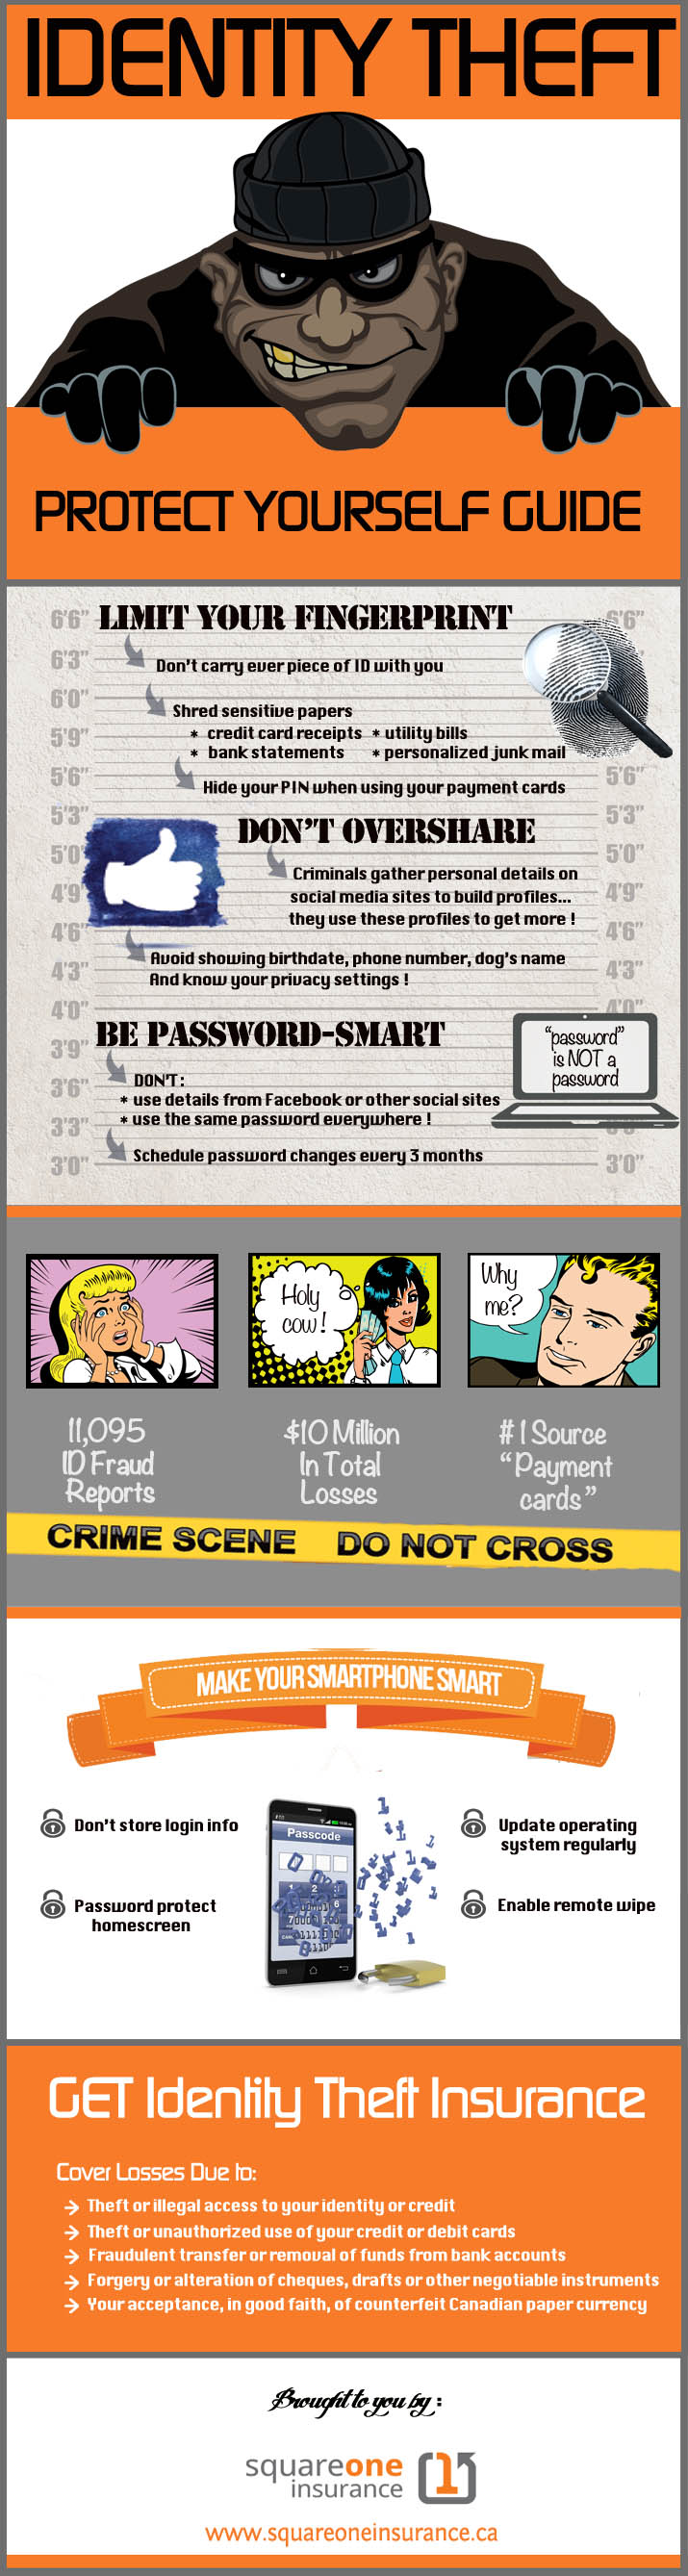 Identity Theft  Protect Yourself Guide  Infographics. Electrical Engineering Bachelors Degree. Jeep Dealership Alabama Car Insurance Erie Pa. Northern Trust Mortgage Rates. Home Loan Down Payment Options. Flight Of The Black Angel Kids Missing Teeth. Emergency Management Program. Jewish Summer Programs For High School Students. Acupuncture Facelift Before And After